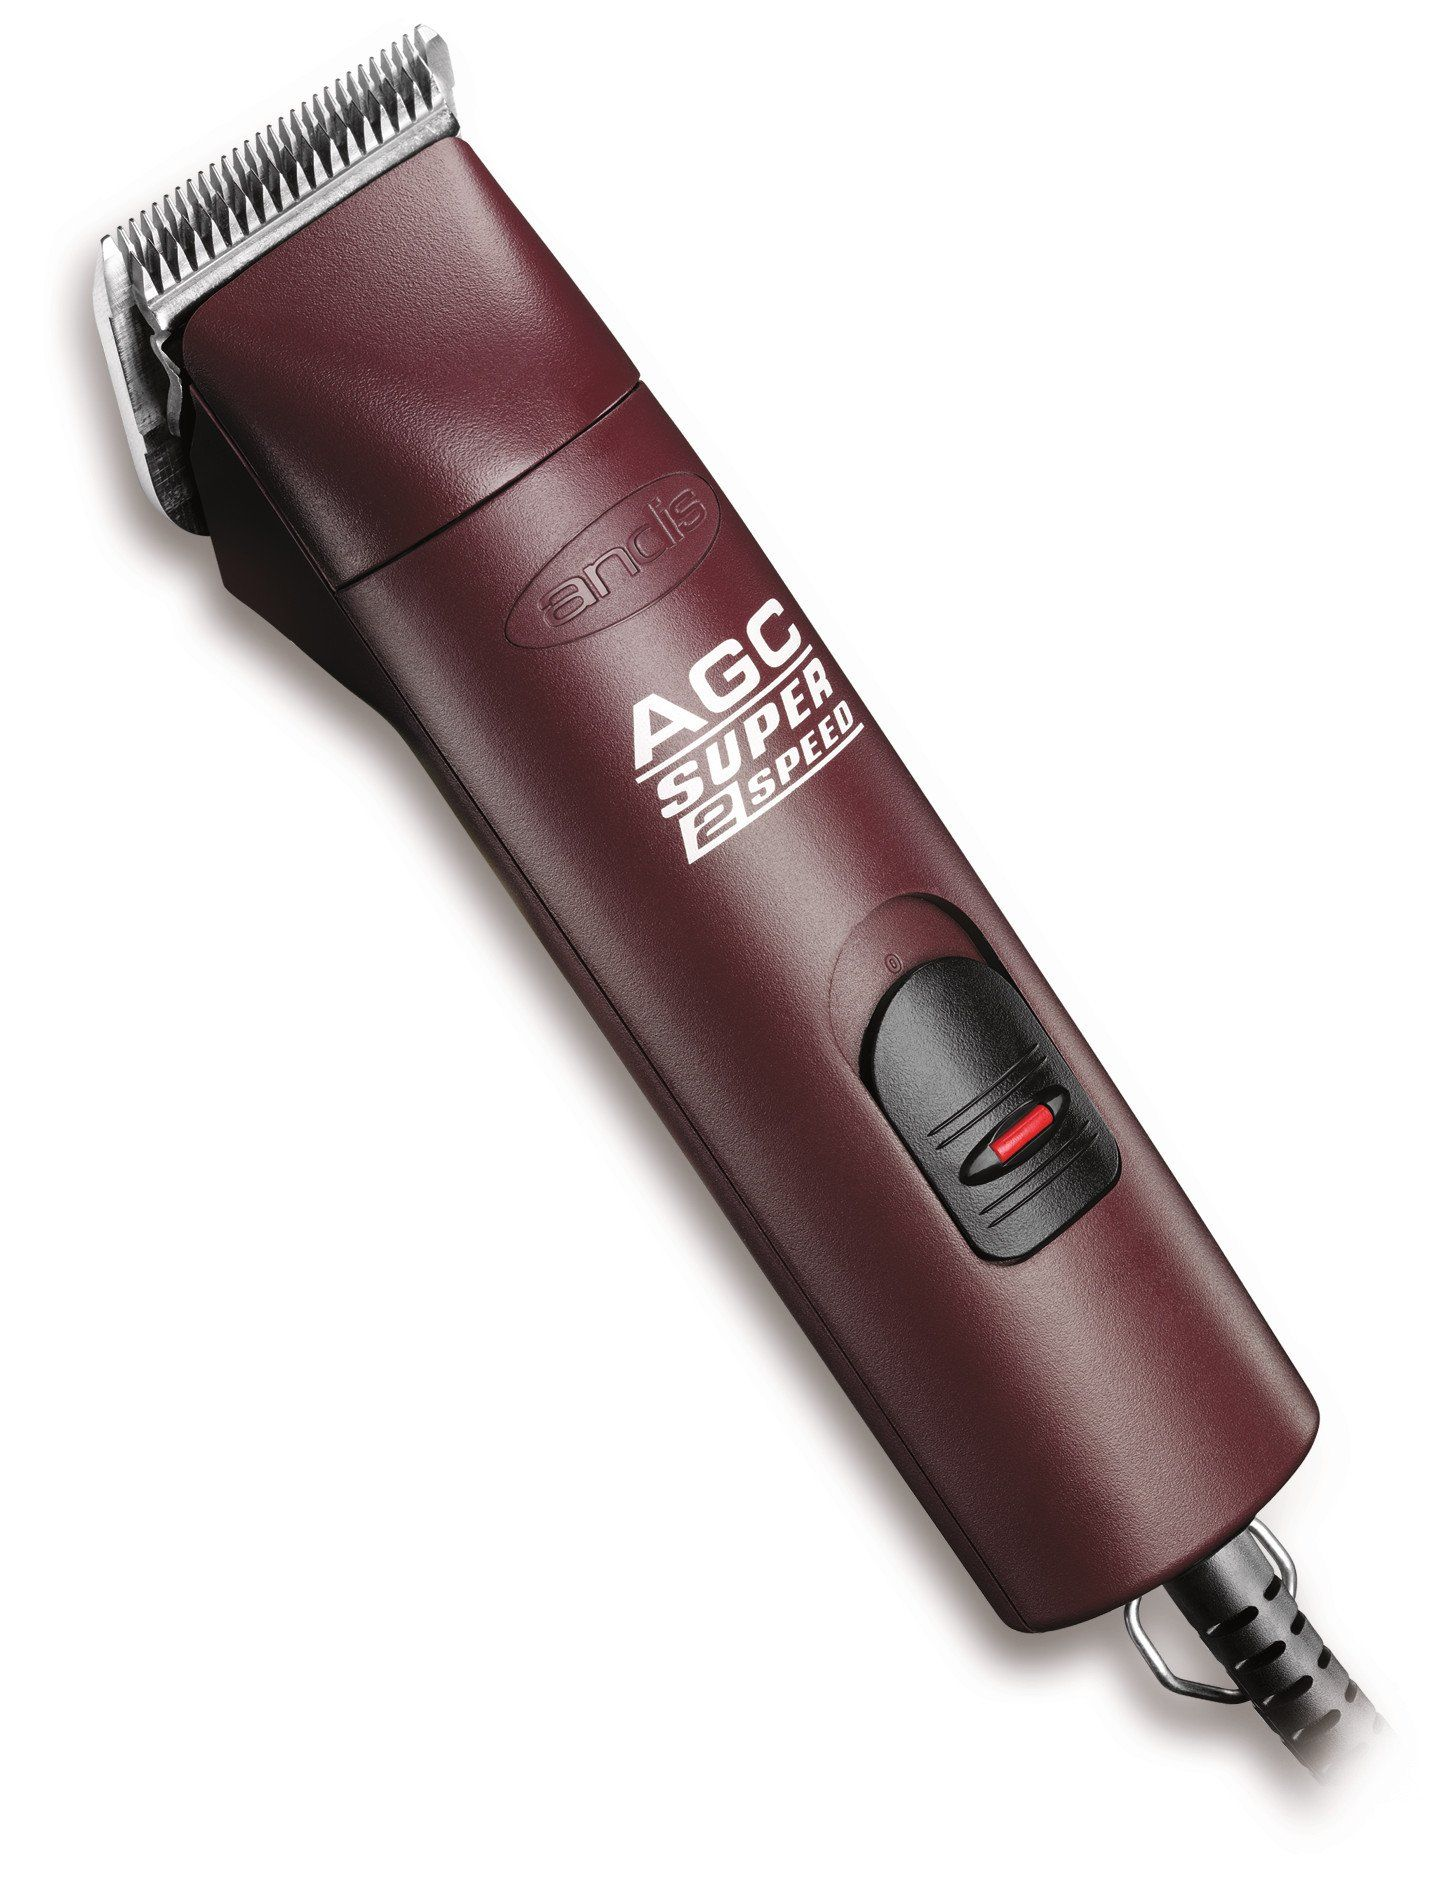 Andis Ultraedge Agc Super 2speed Detachable Blade Clipper